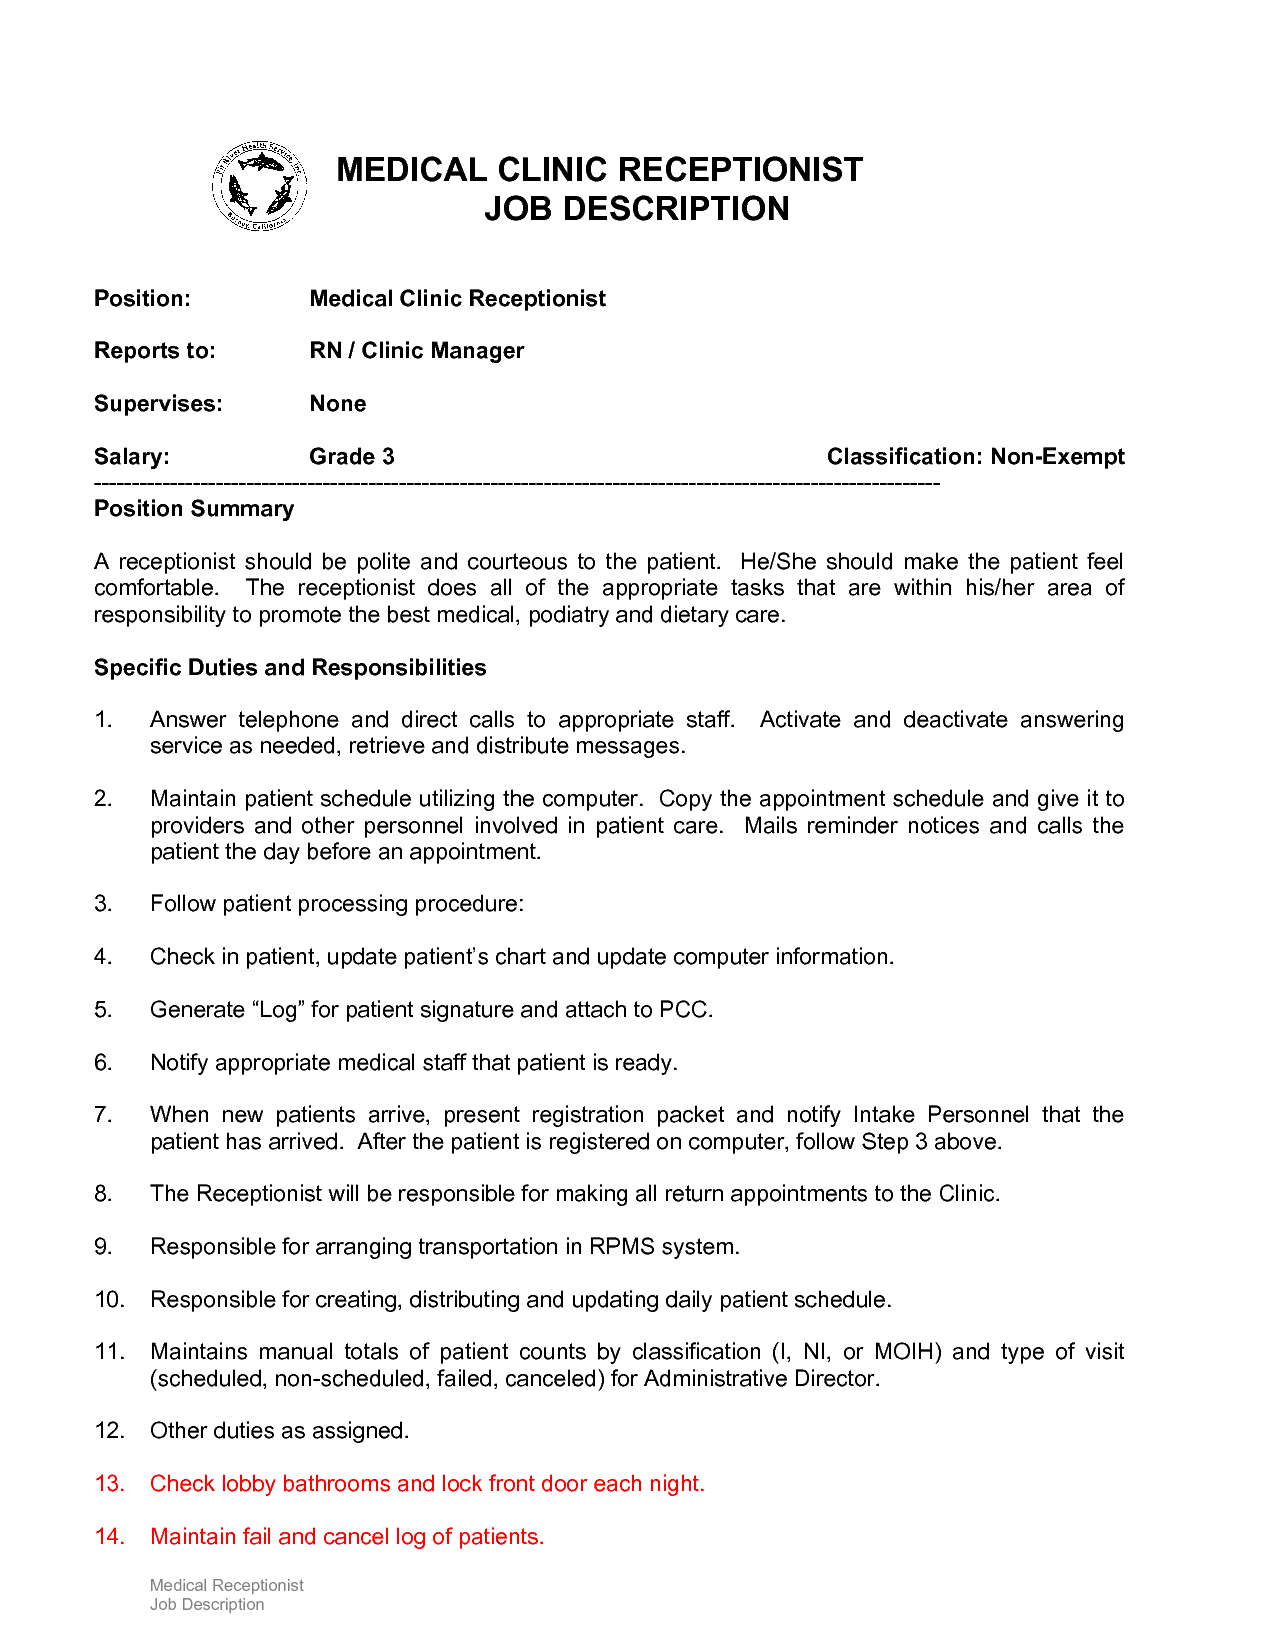 Medical Receptionist Job Description Resume Duties